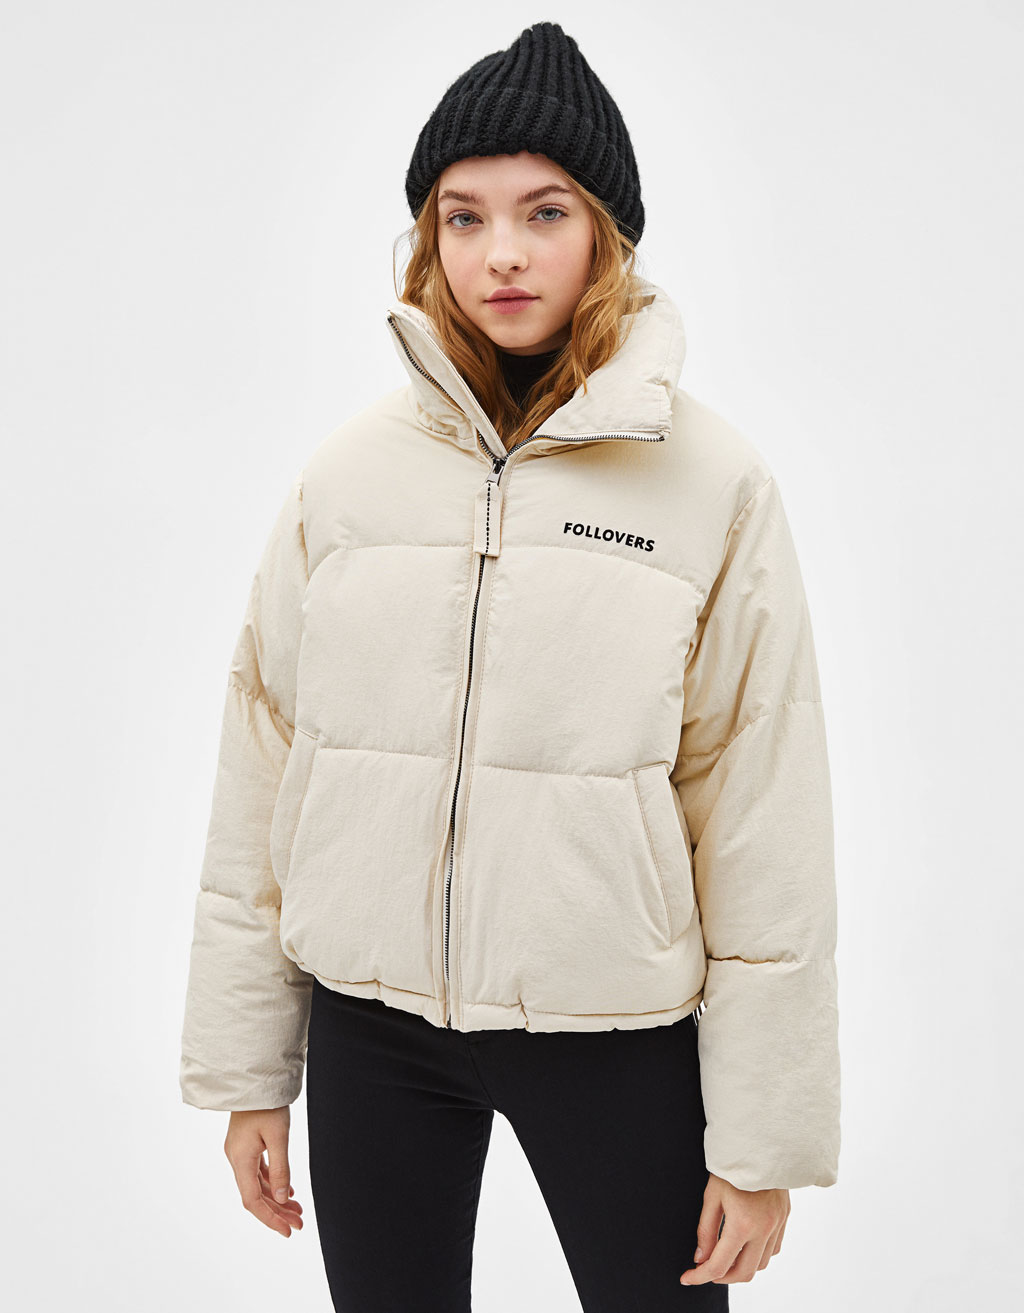 Pufferjacke Follovers